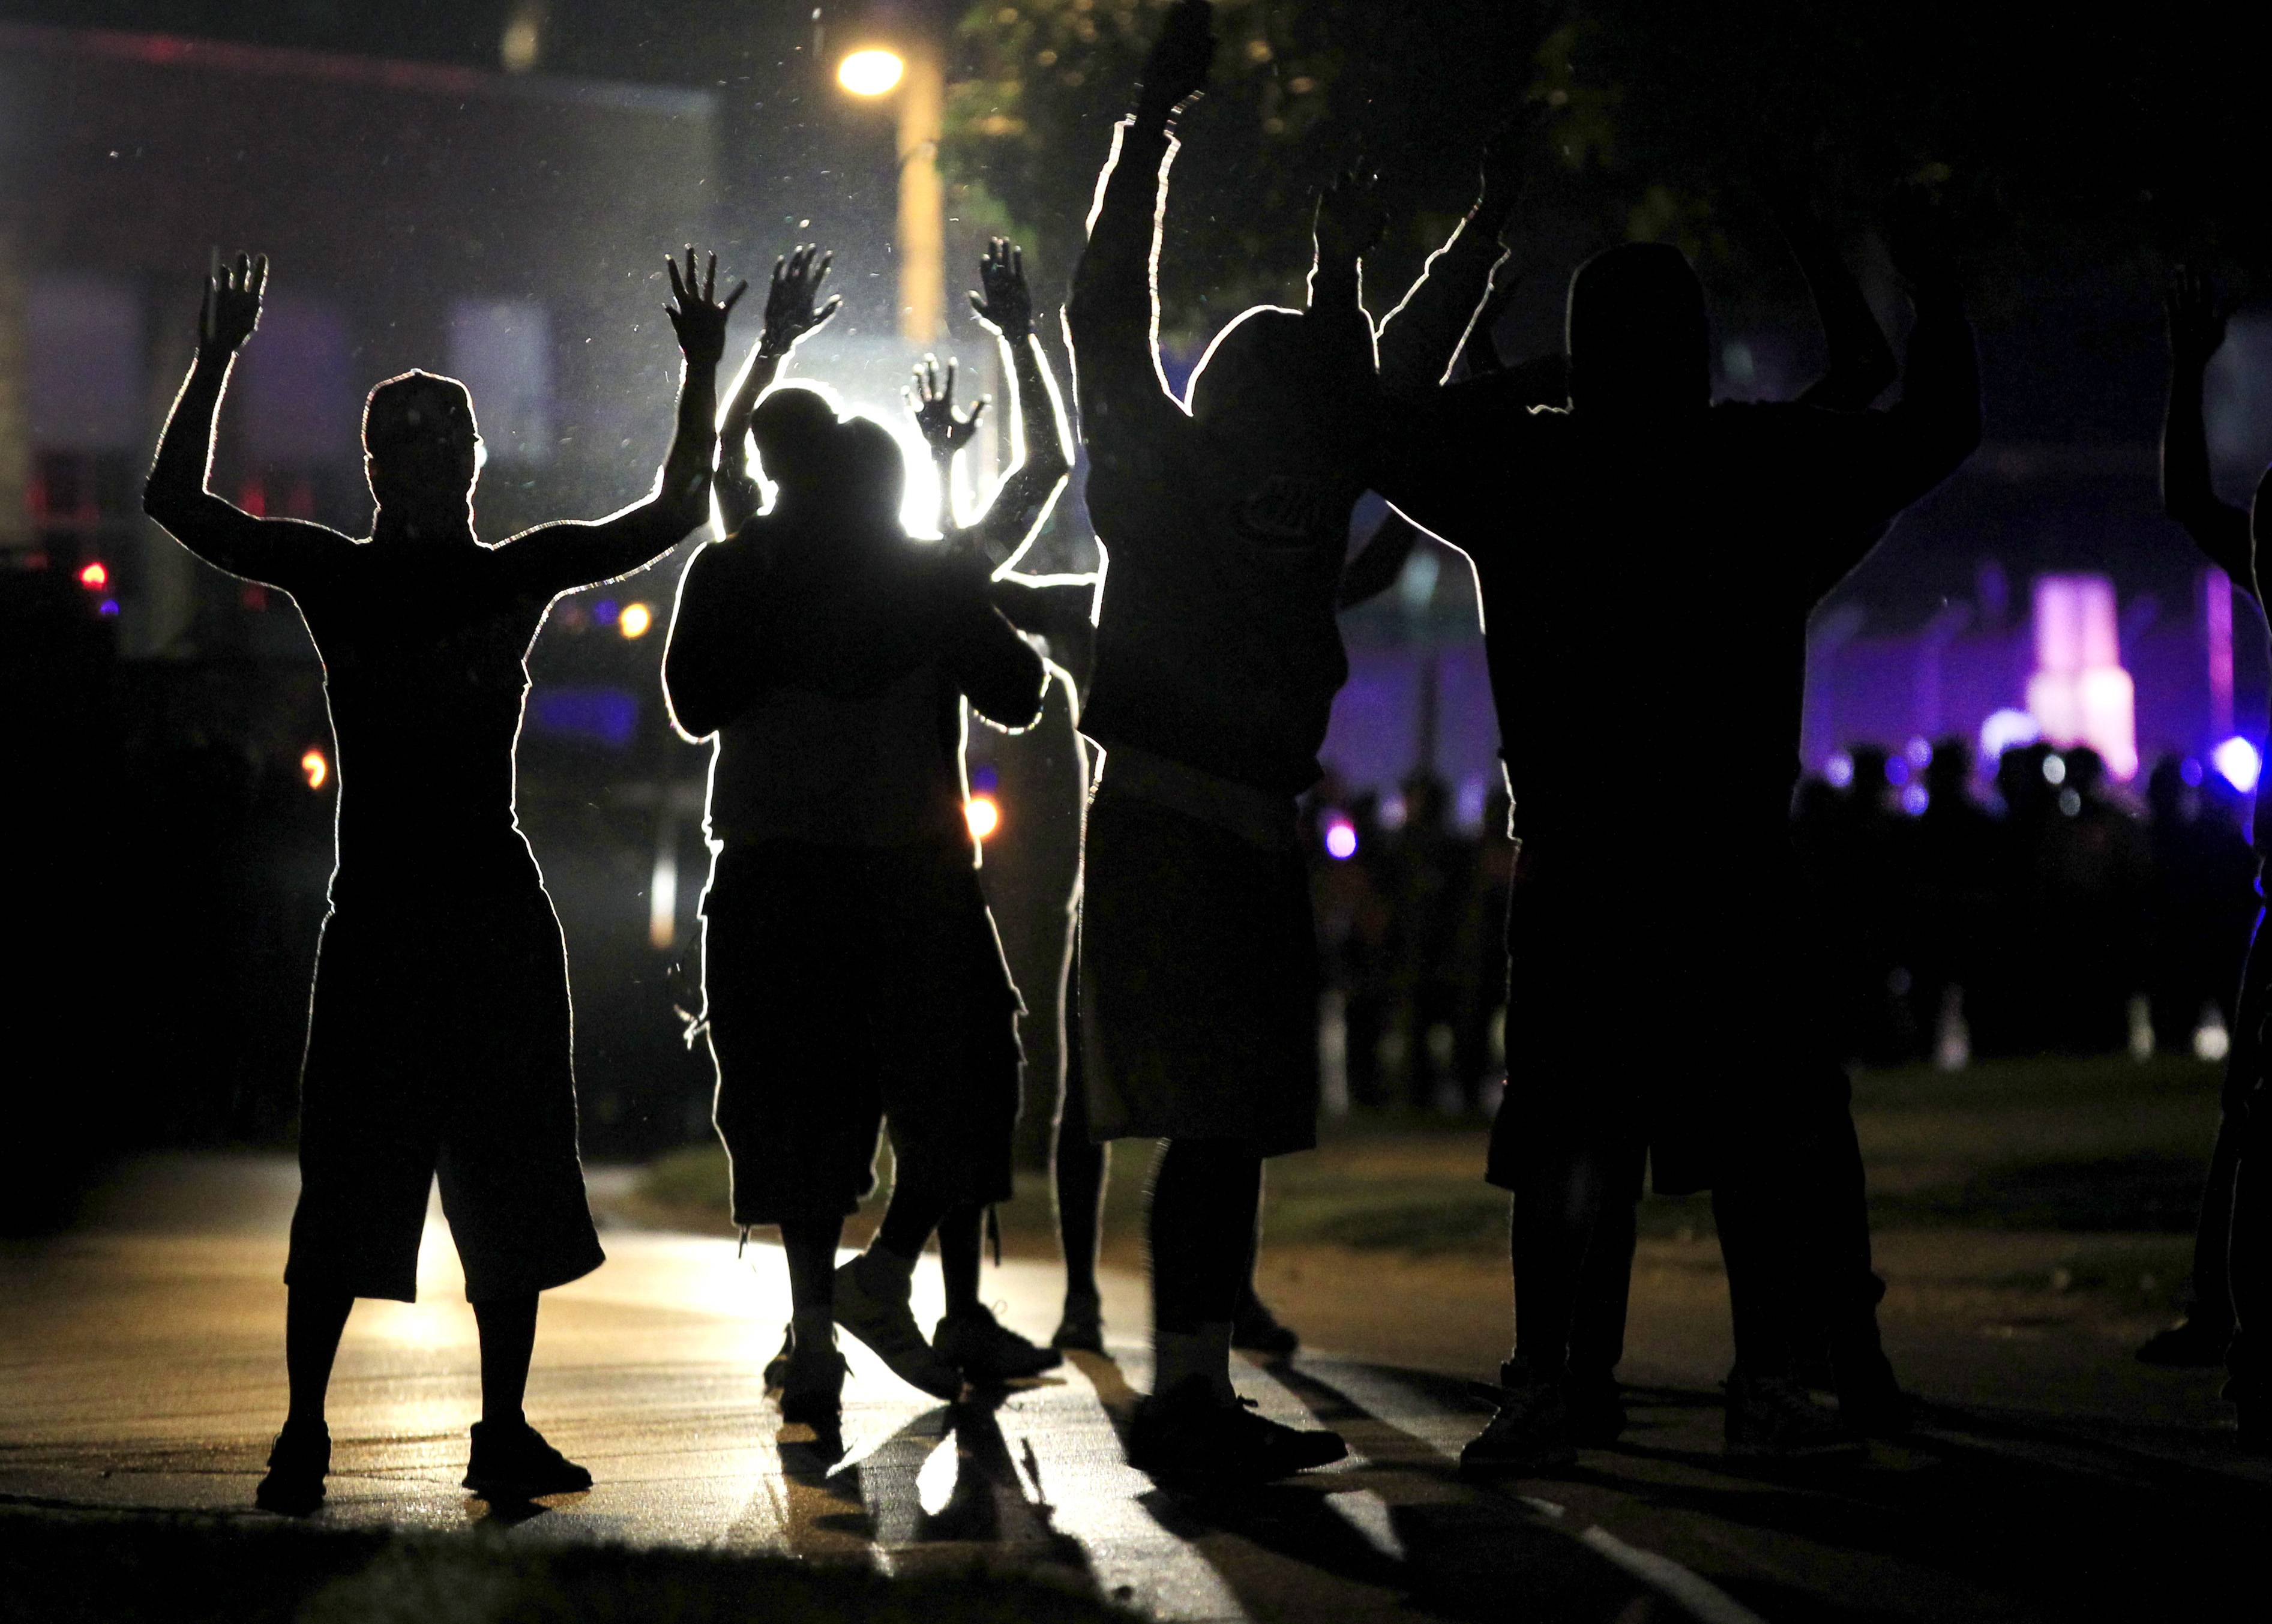 People raise their hands in the middle of the street as police wearing riot gear move toward their position trying to get them to disperse Monday in Ferguson, Mo. The FBI opened an investigation Monday into the death of 18-year-old Michael Brown, who police said was shot multiple times Saturday after being confronted by an officer in Ferguson.